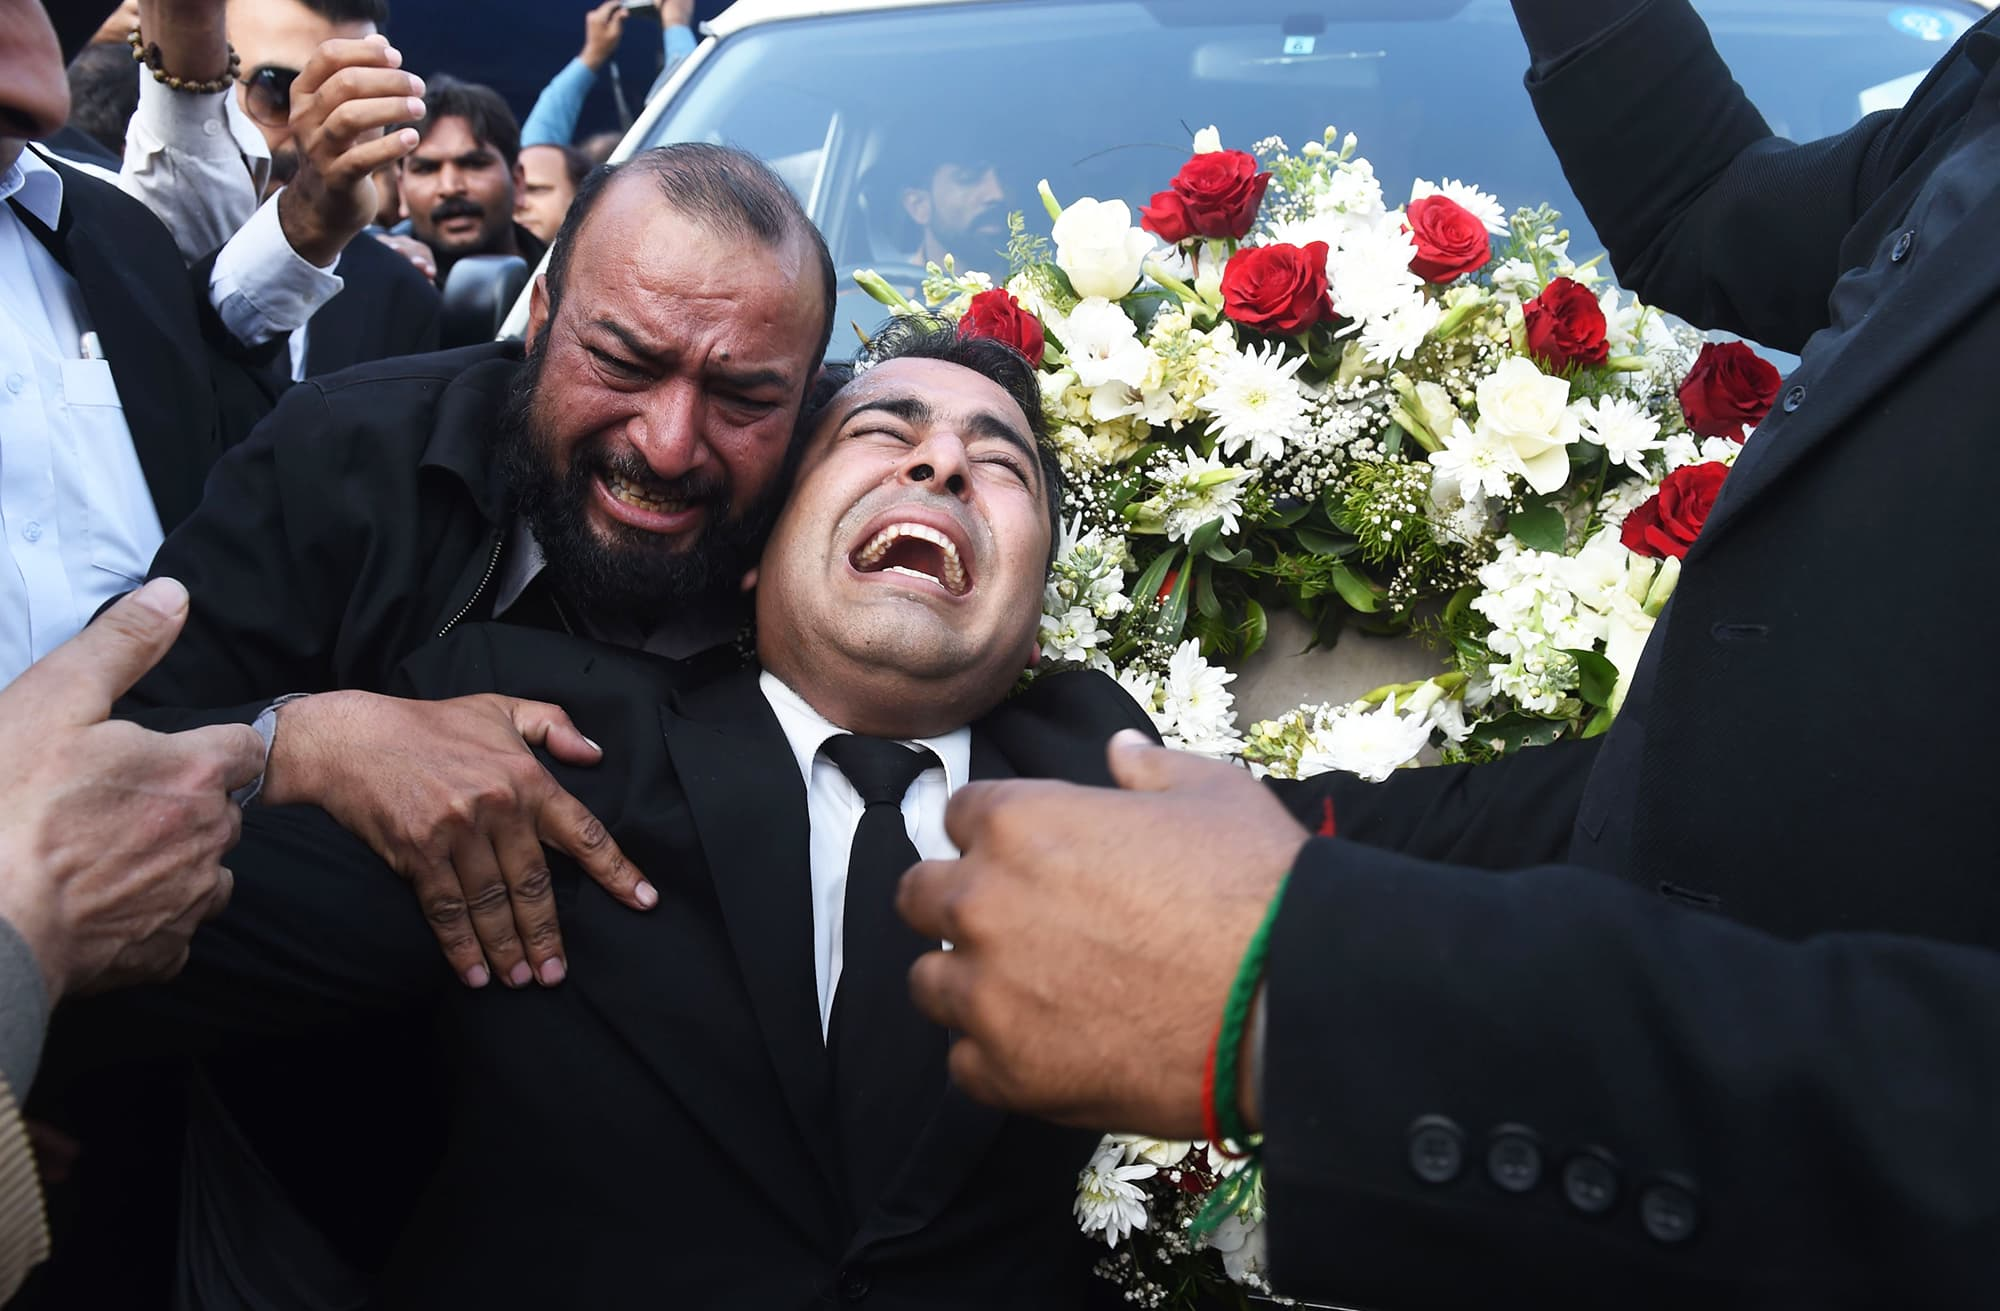 Pakistani colleagues of lawyer and rights advocate Asma Jahangir mourn alongside the vehicle carrying her coffin during her funeral in Lahore on February 13, 2018.